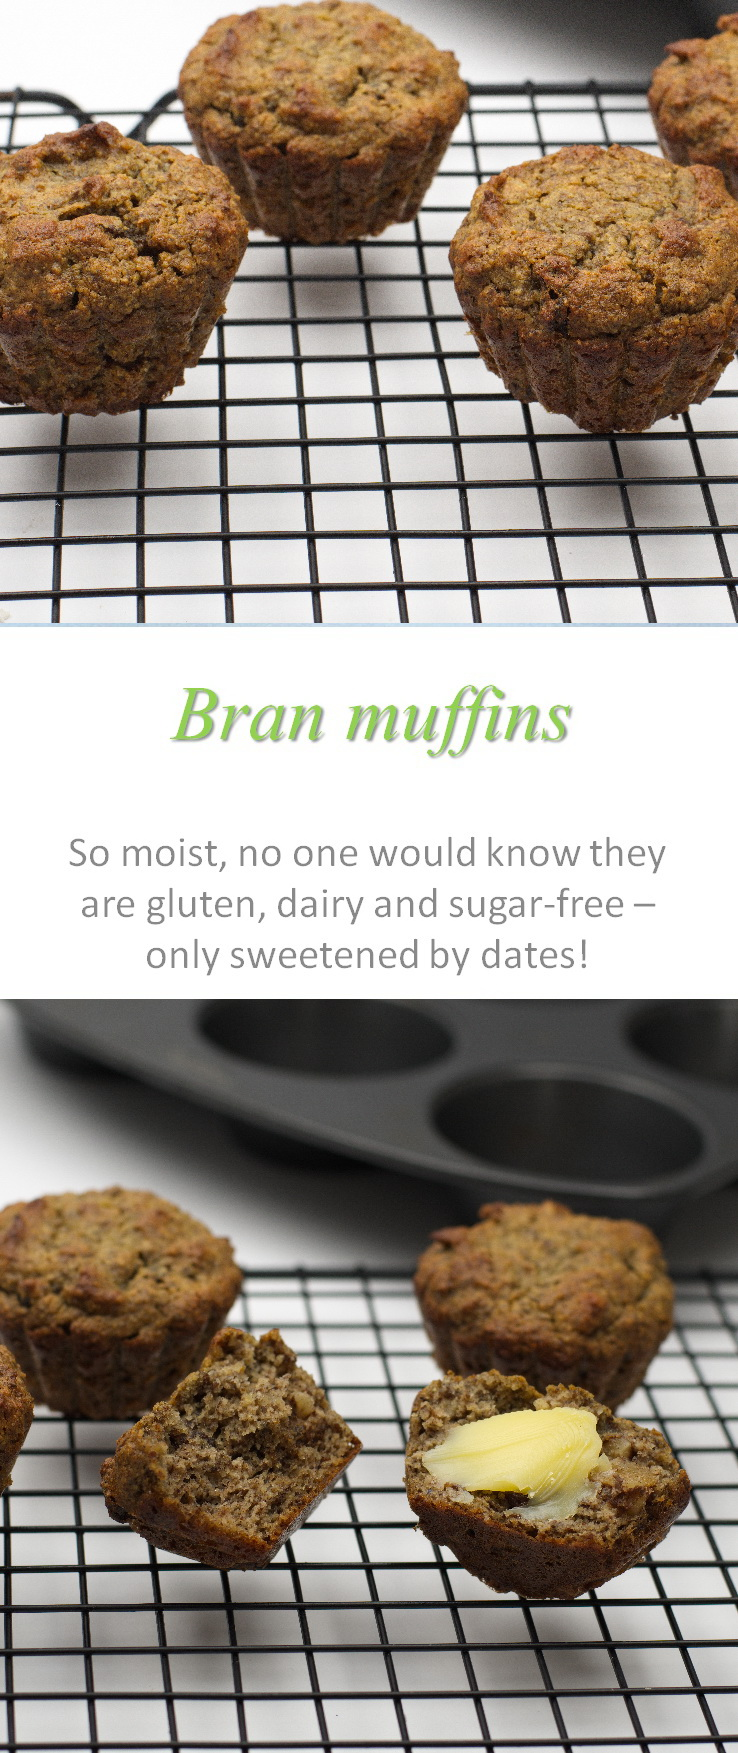 Gluten and dairy-free bran muffins, sweetened only with dates, that are really moist and yummy with almost any topping you wish, or just plain! #bran